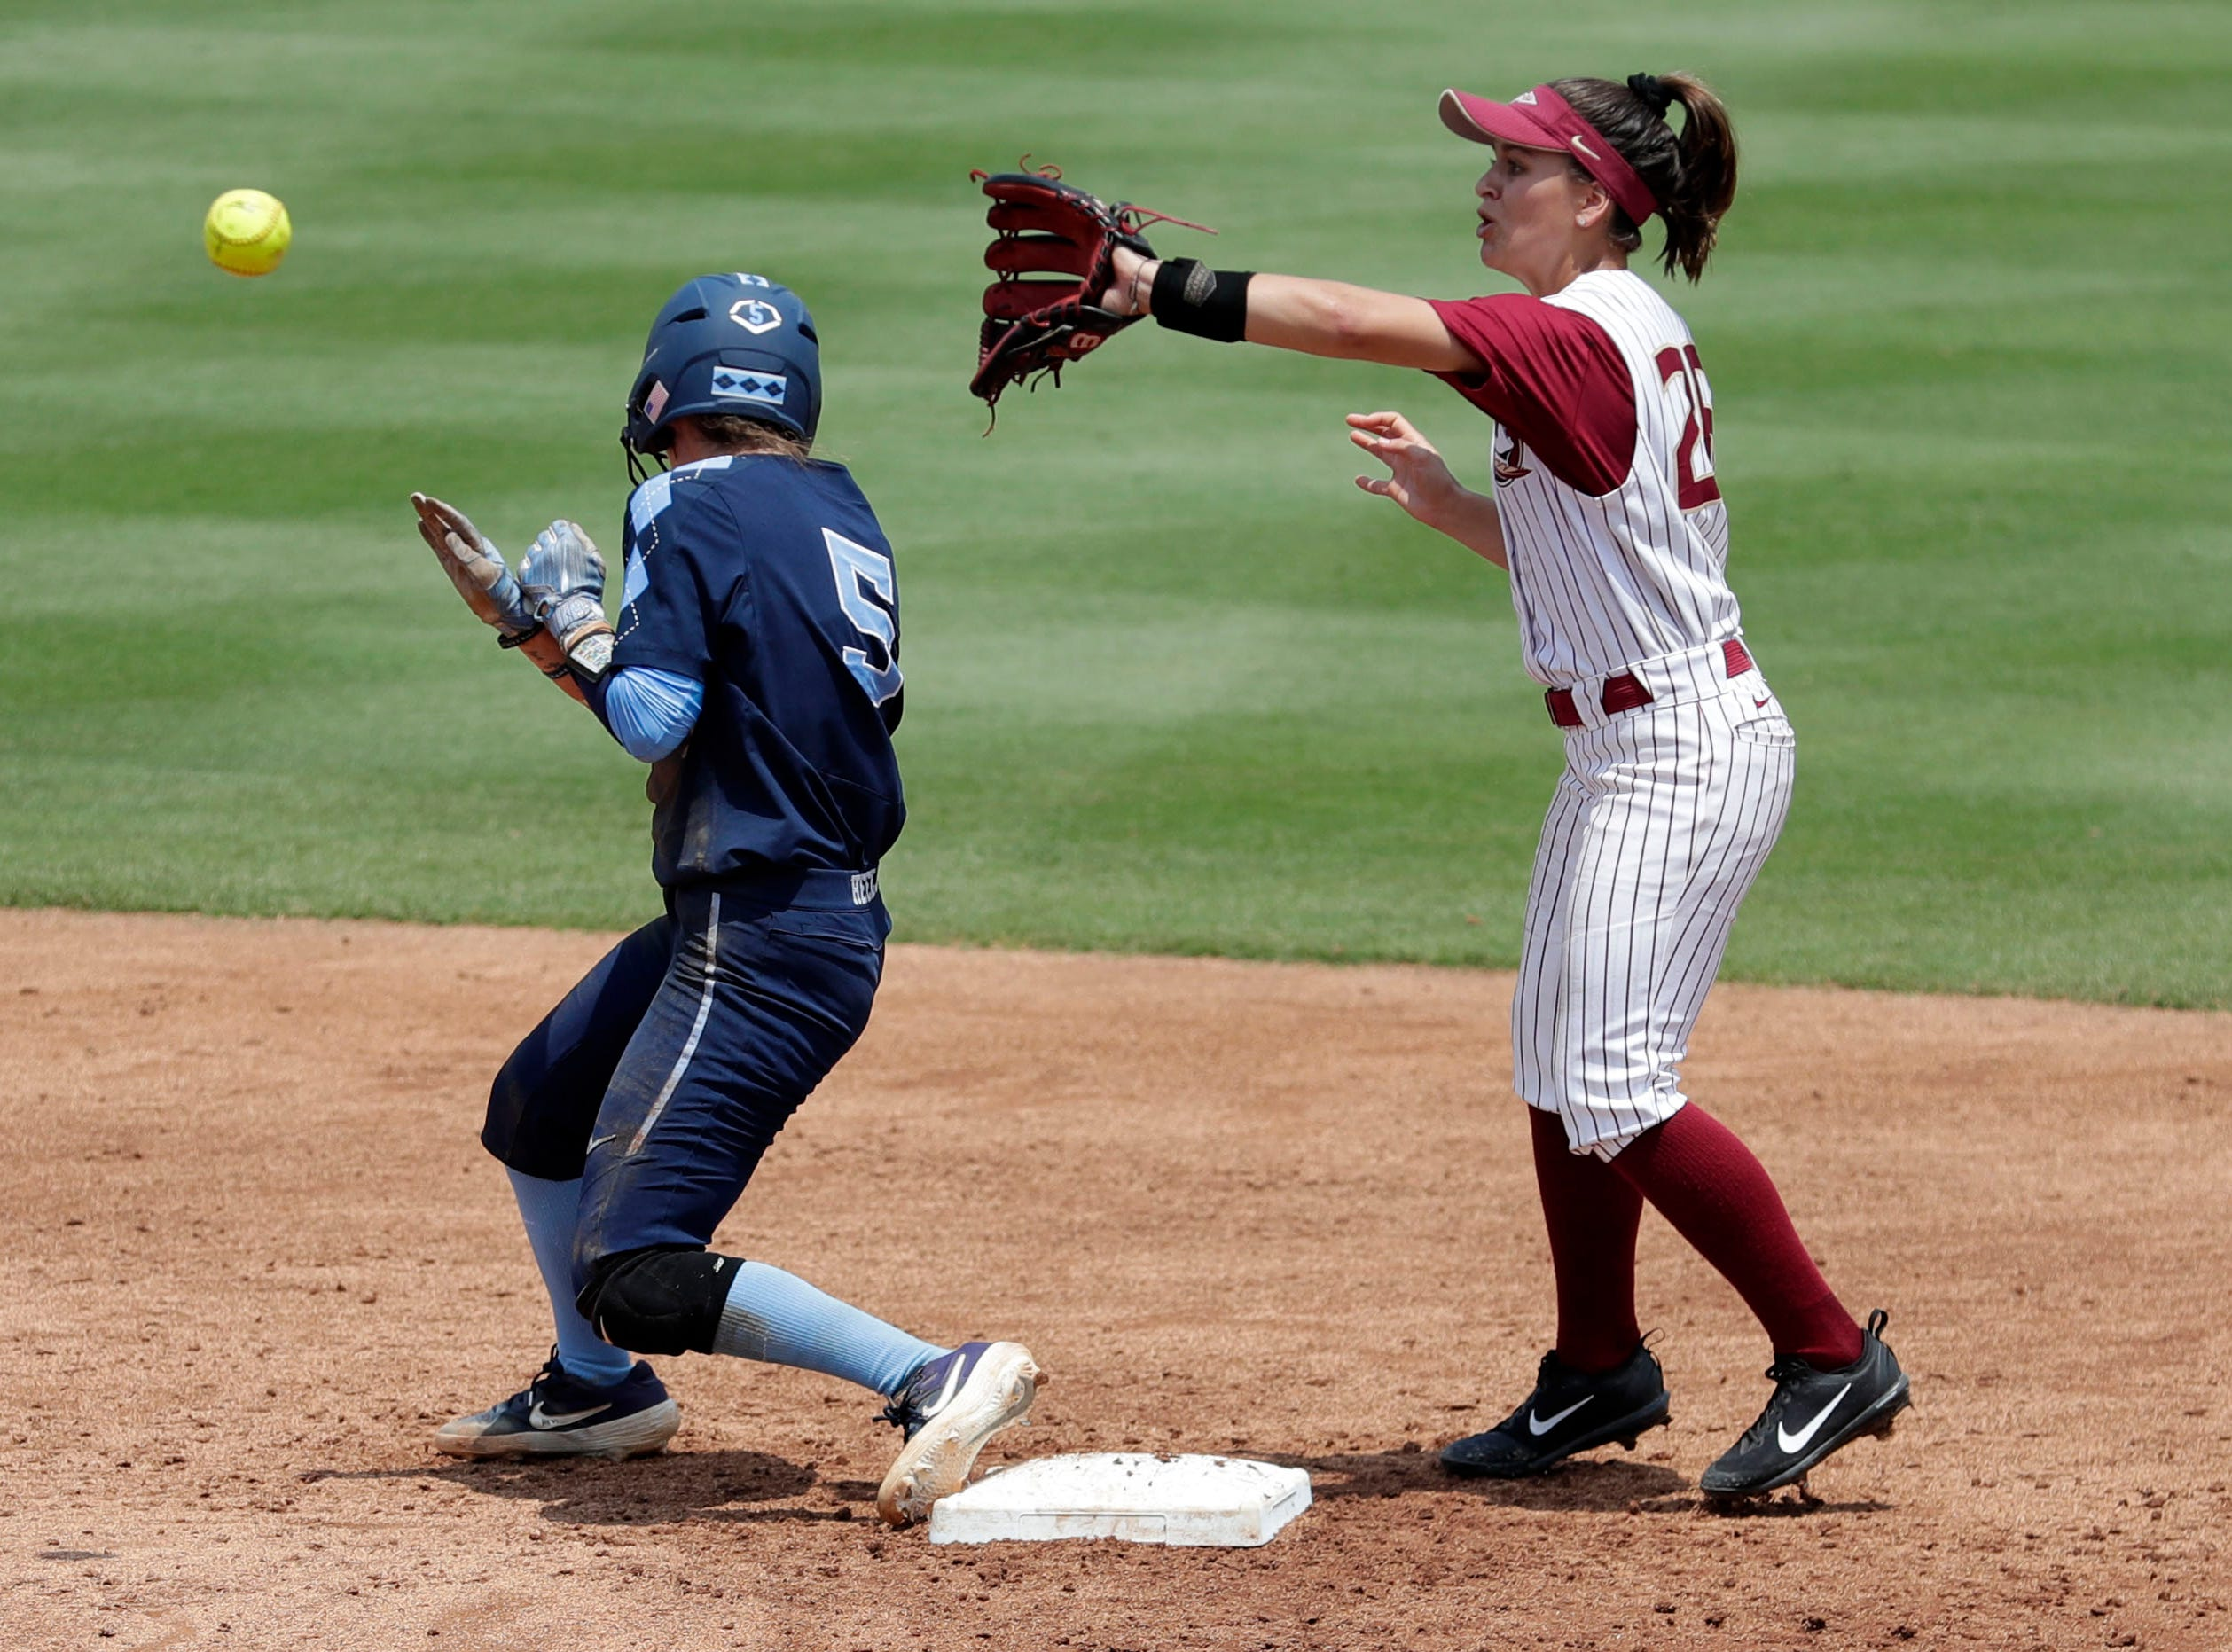 Florida State Seminoles infielder Leslie Farris (26) barely misses getting the put at second base. The Florida State Seminoles host the UNC Tar Heels for the ACC Softball Tournament finals Saturday, May 11, 2019.